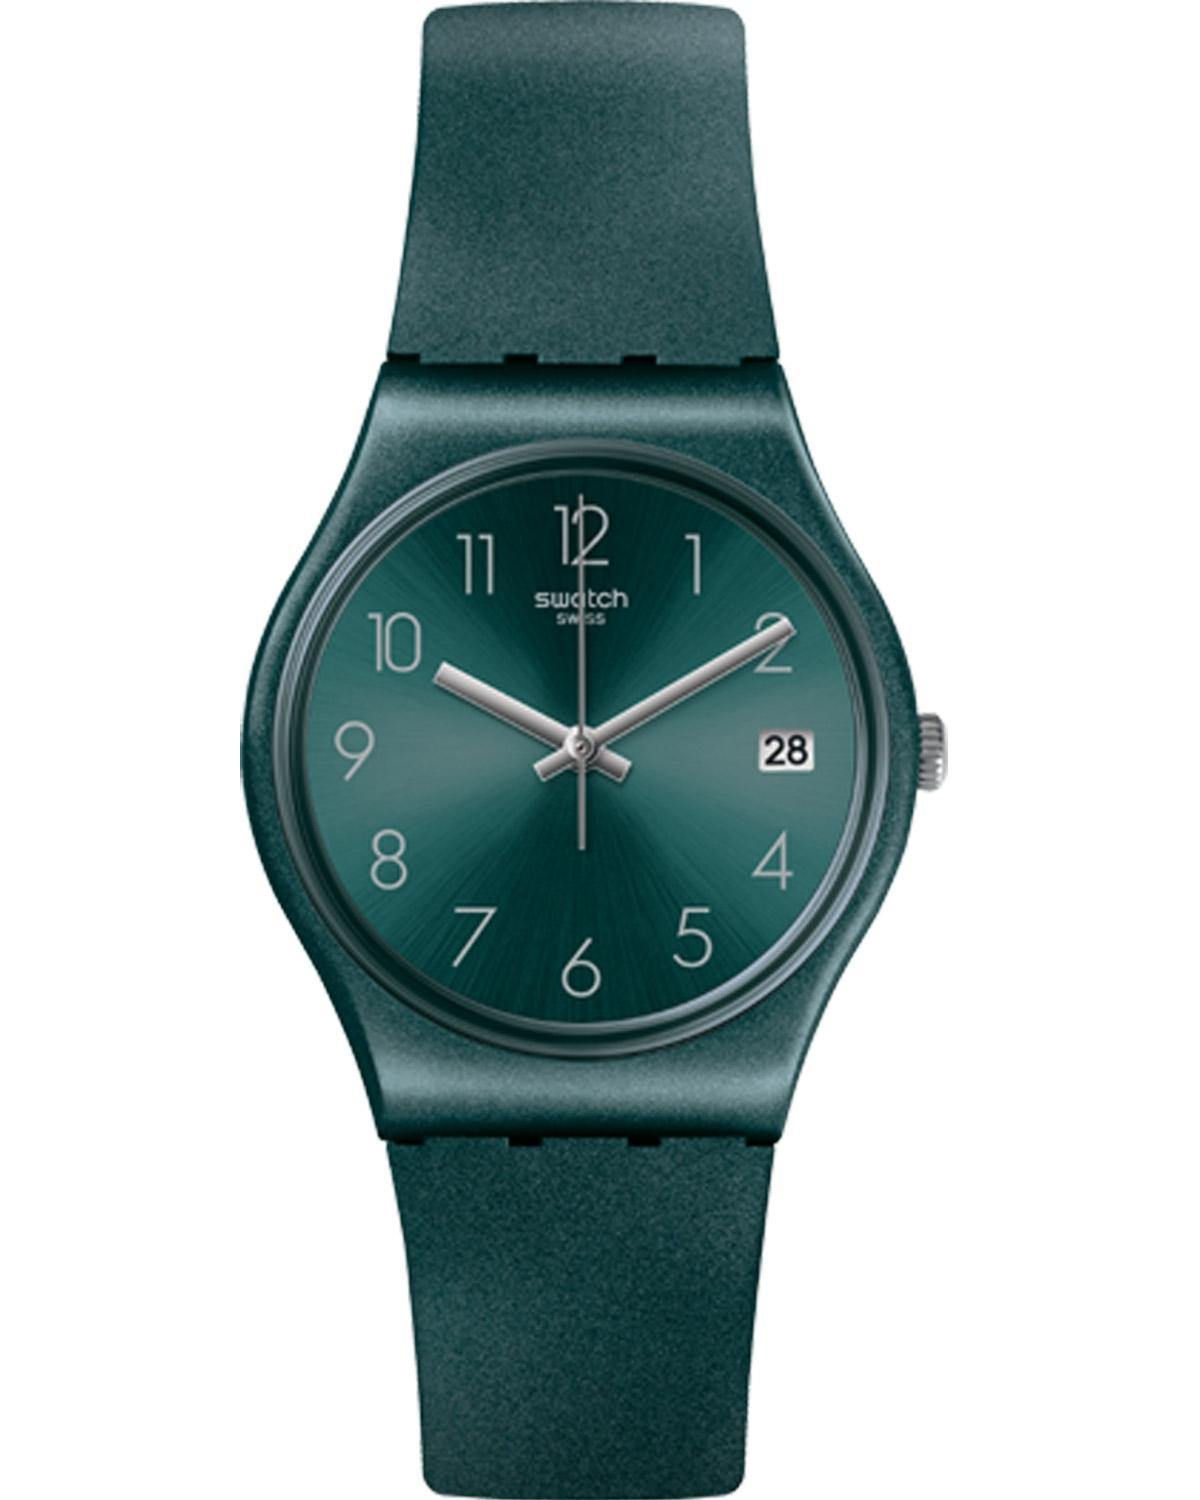 SWATCH Ashbaya - GG407 Green case with Green Rubber Strap